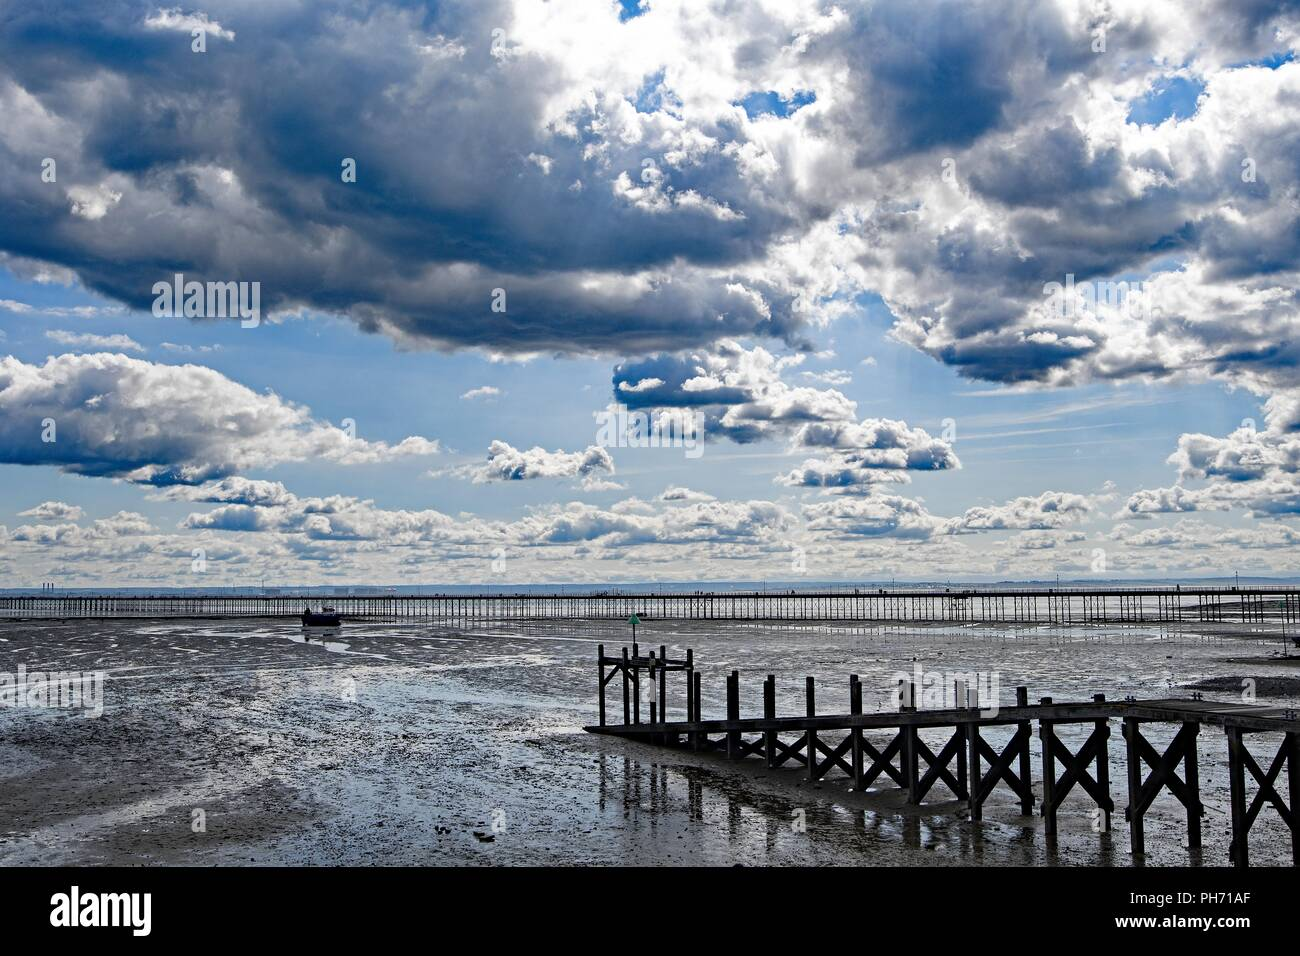 Capturing an awesome panoramic view of the longest pleasure pier in the world, at South End on Sea, Essex. - Stock Image